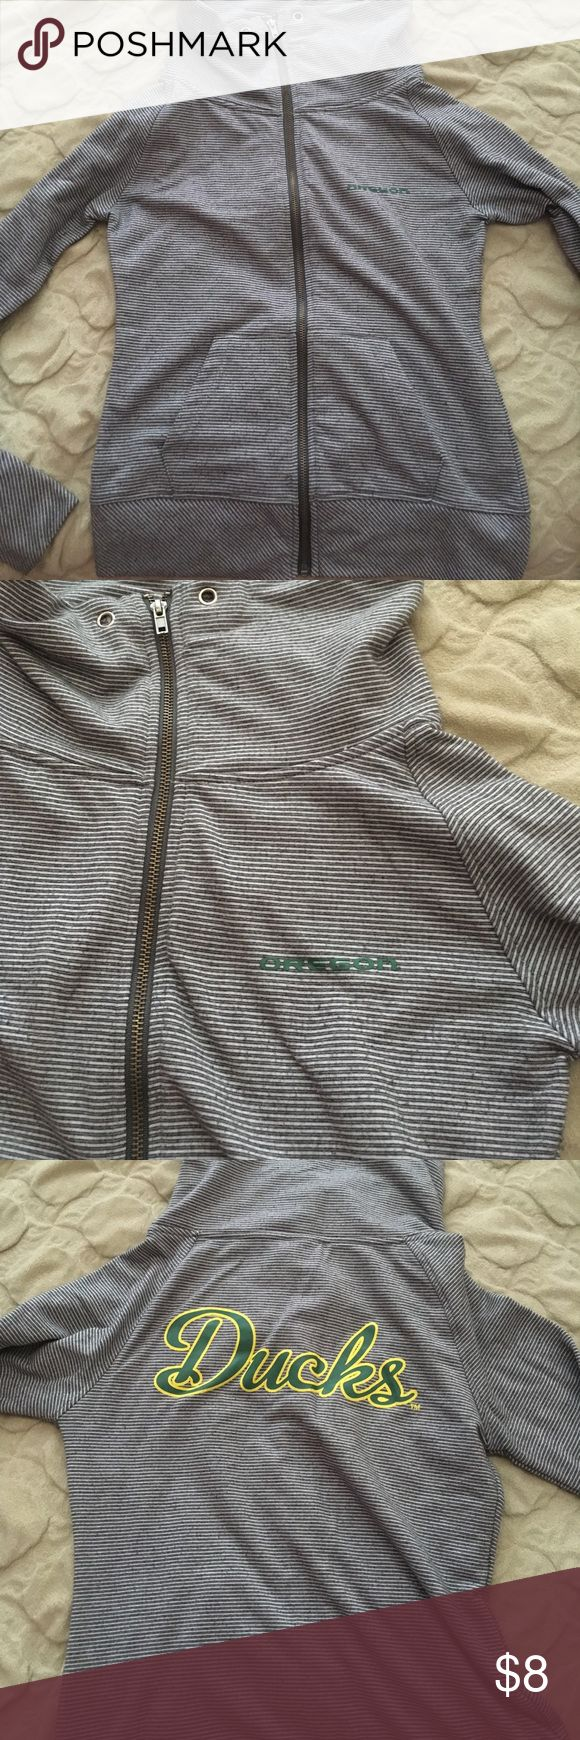 Oregon Ducks jacket Size small fits perfect, worn a couple of times but in good condition :) Colosseum Jackets & Coats